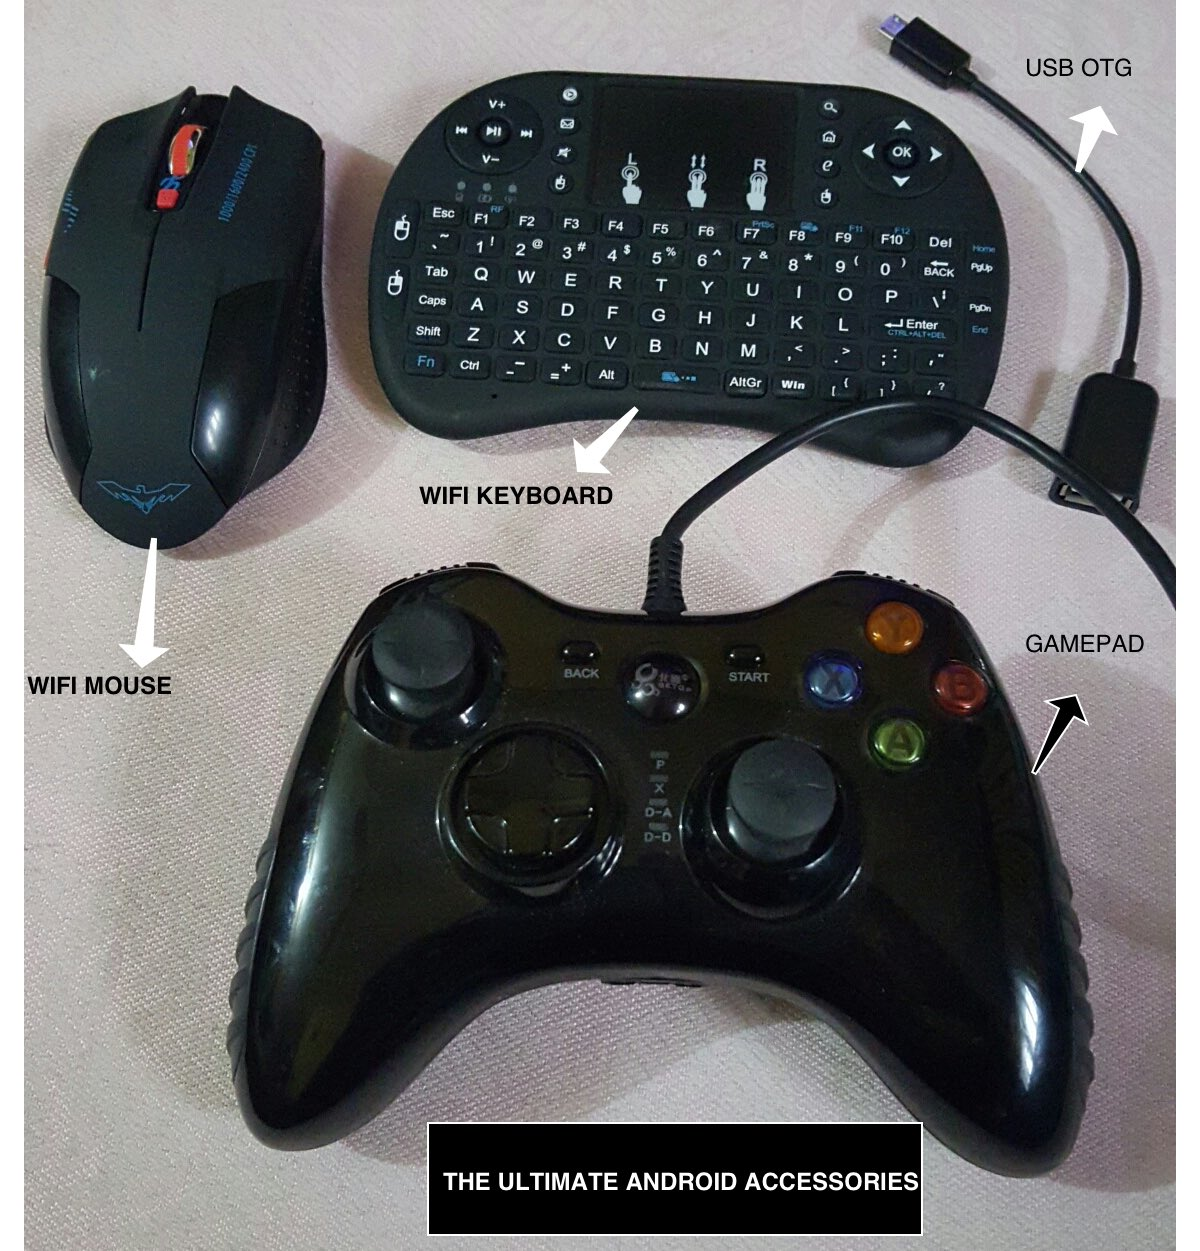 mouse, keyboad and gamepad for android